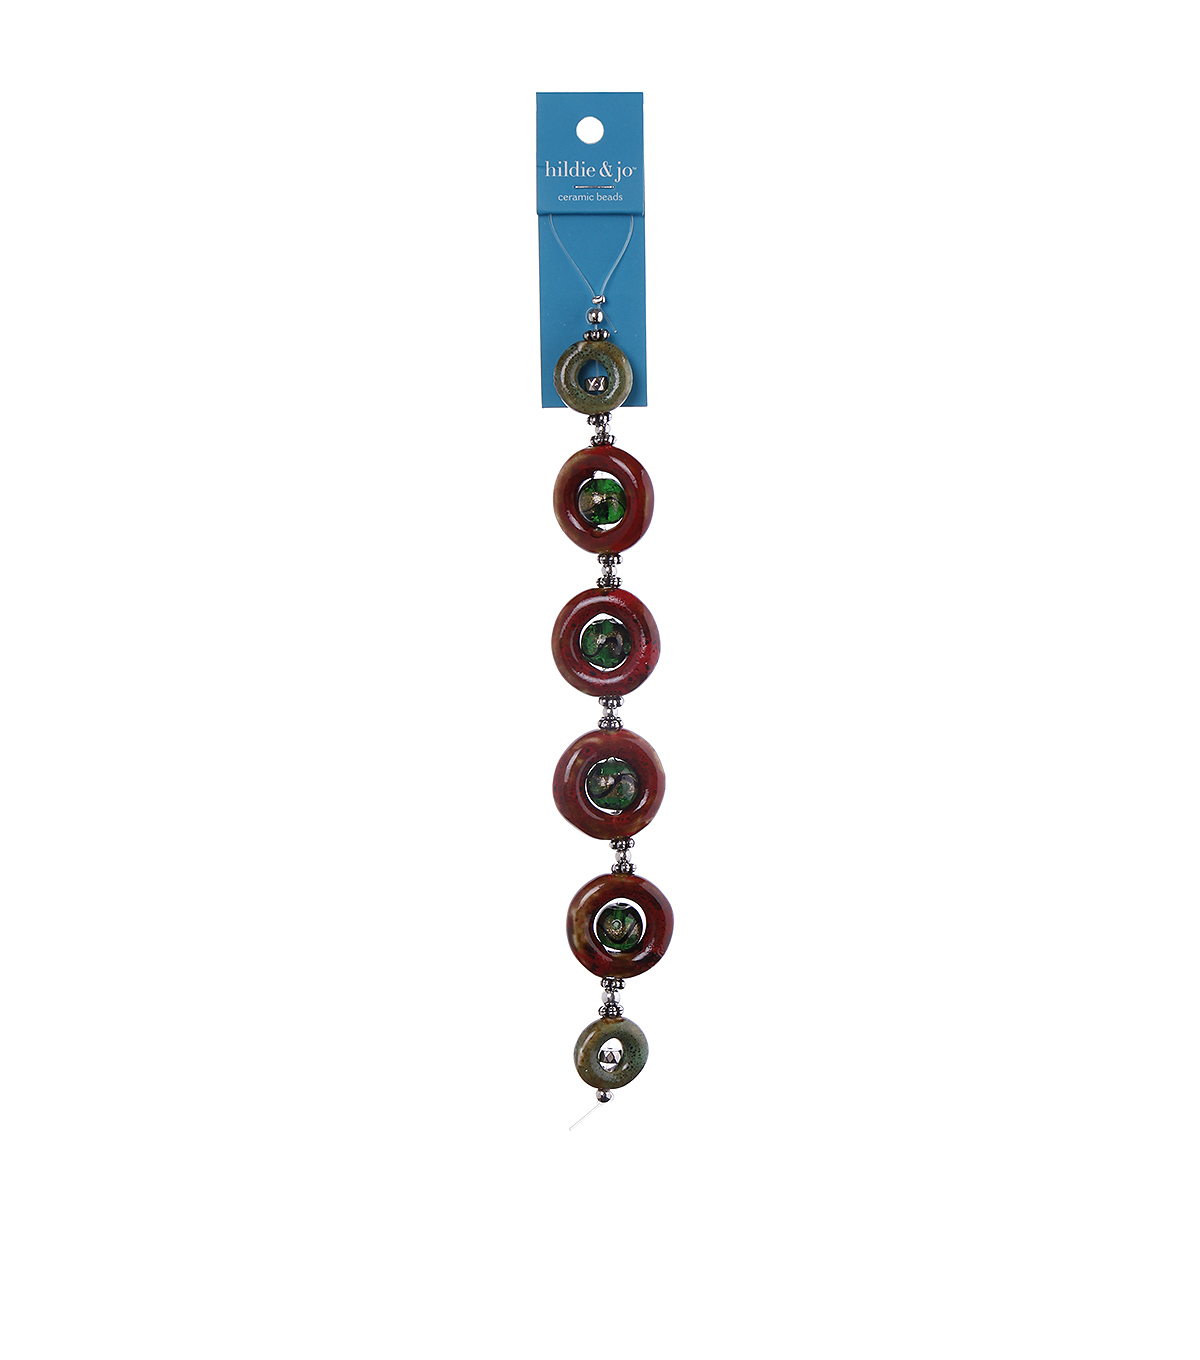 hildie & jo™ 7\u0027\u0027 Button Strung Beads-Dark Red & Green